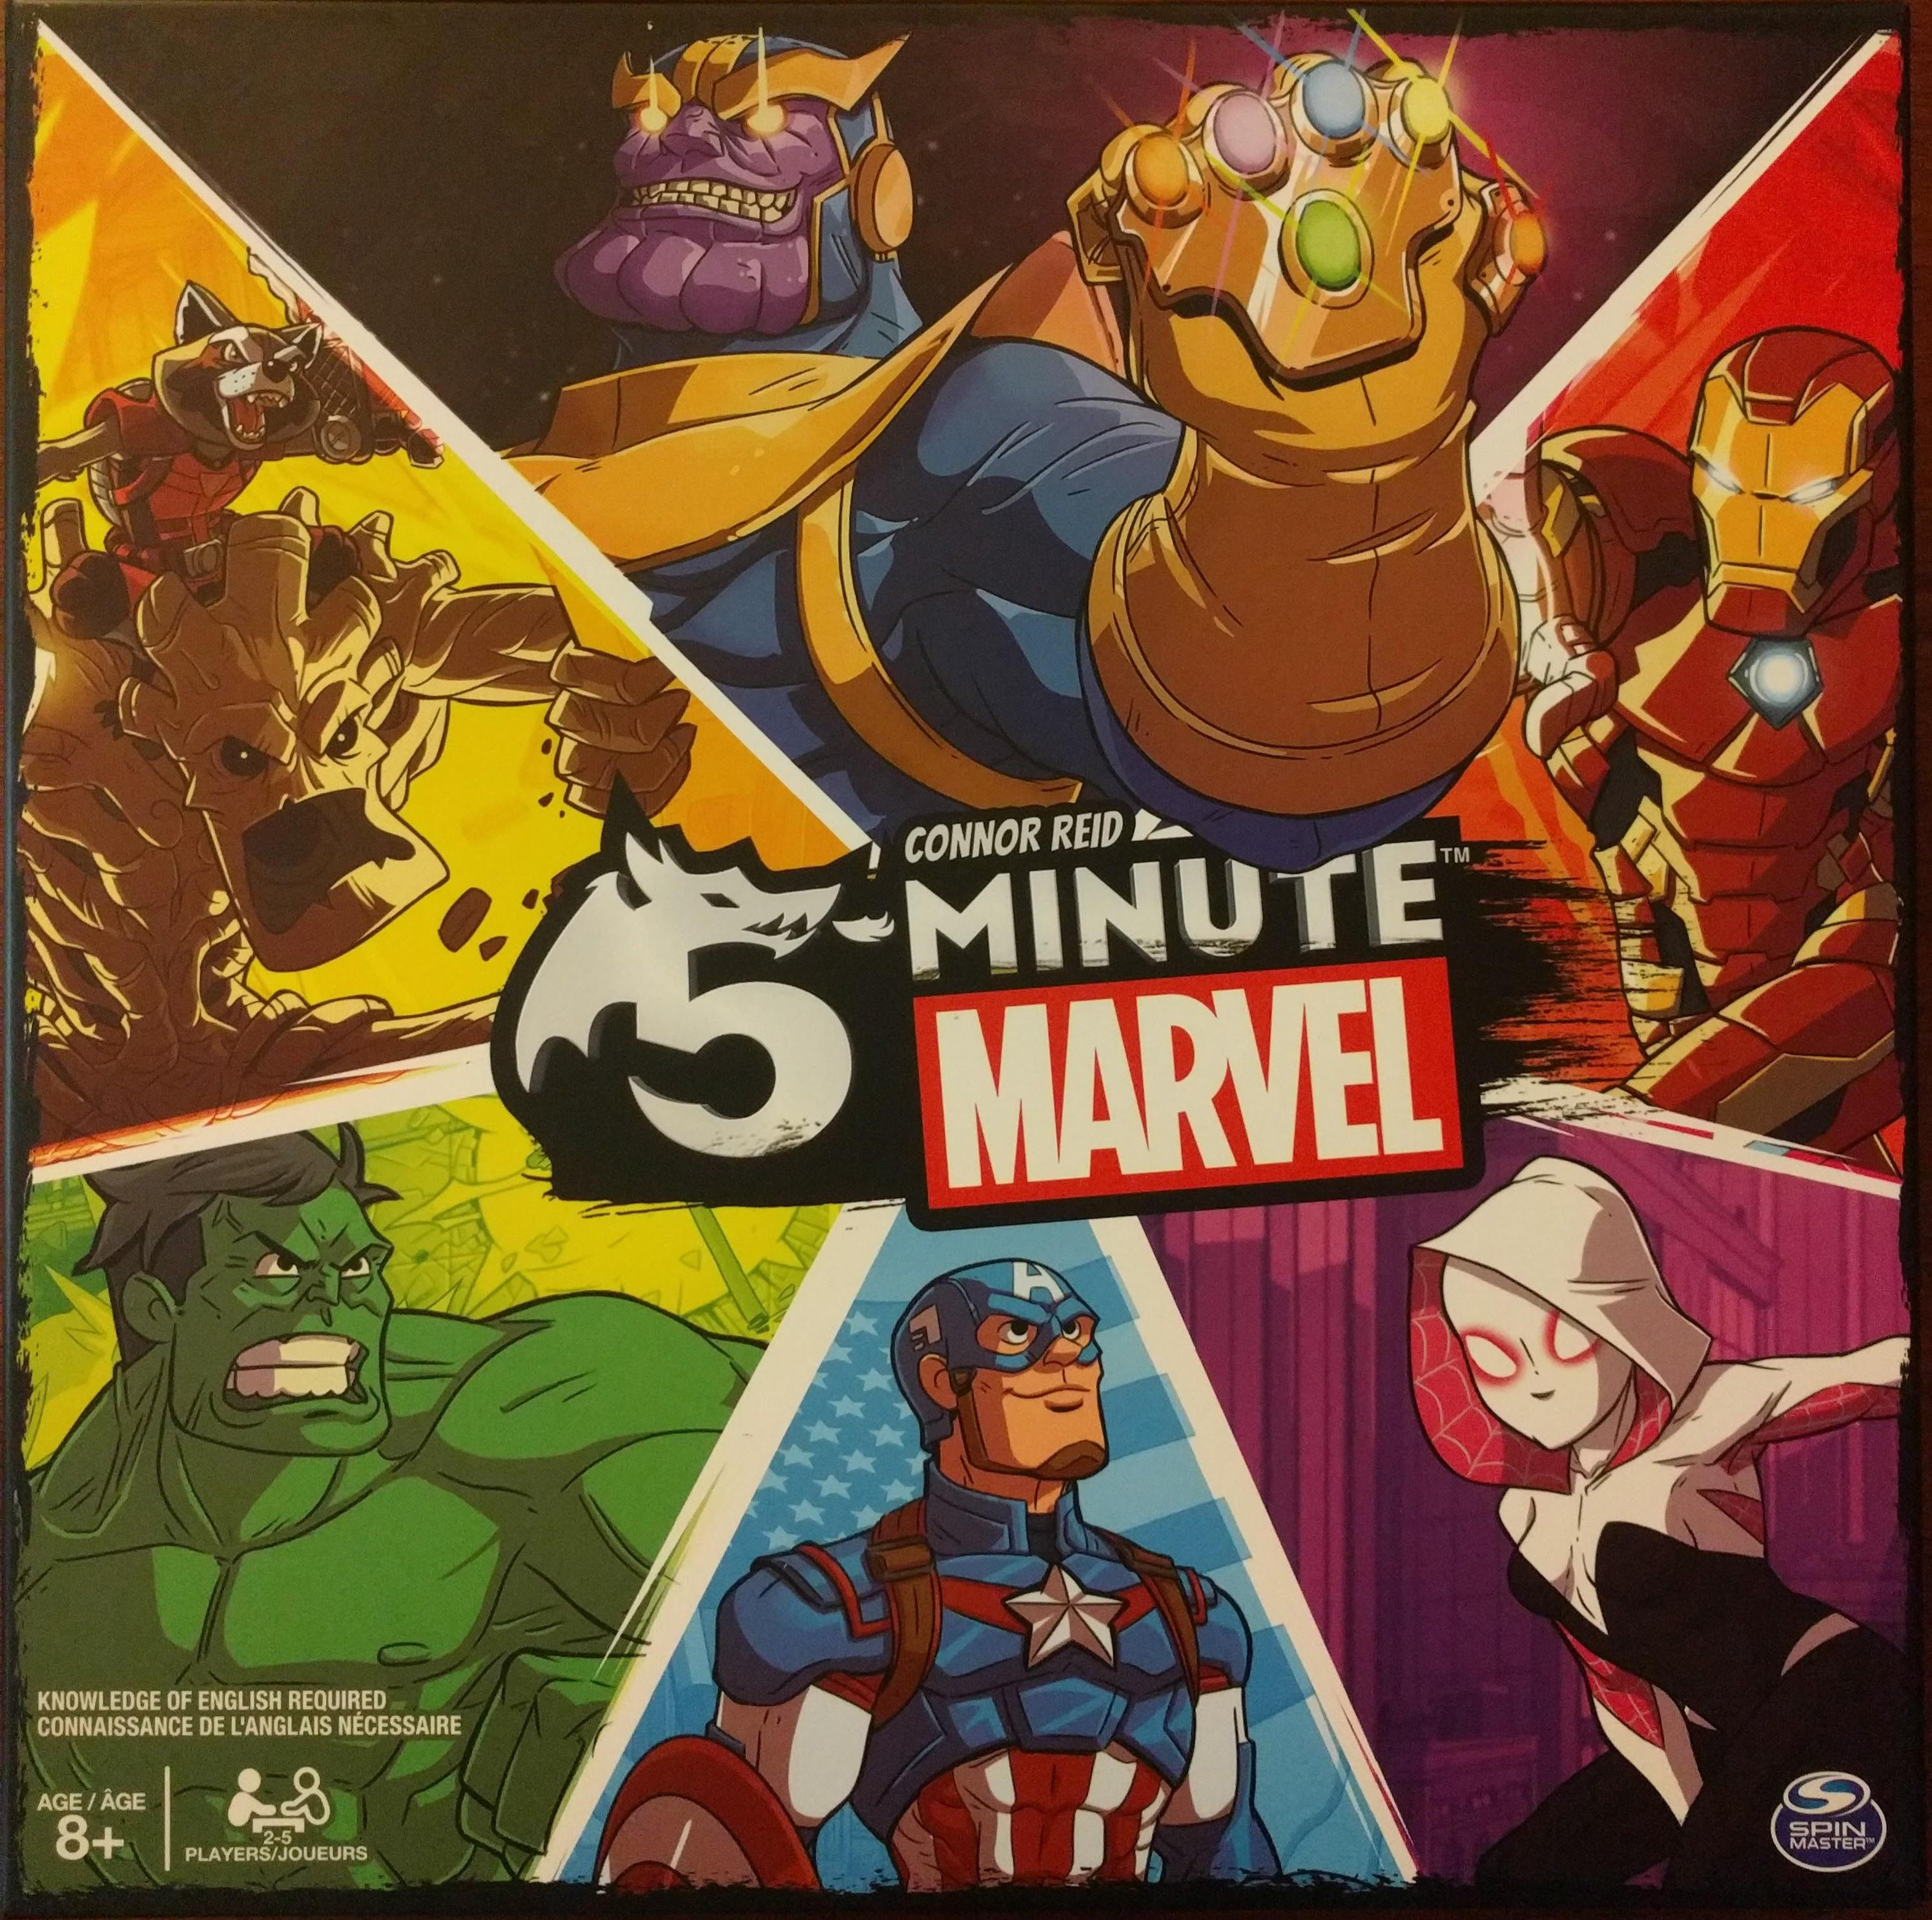 Main image for 5-Minute Marvel board game